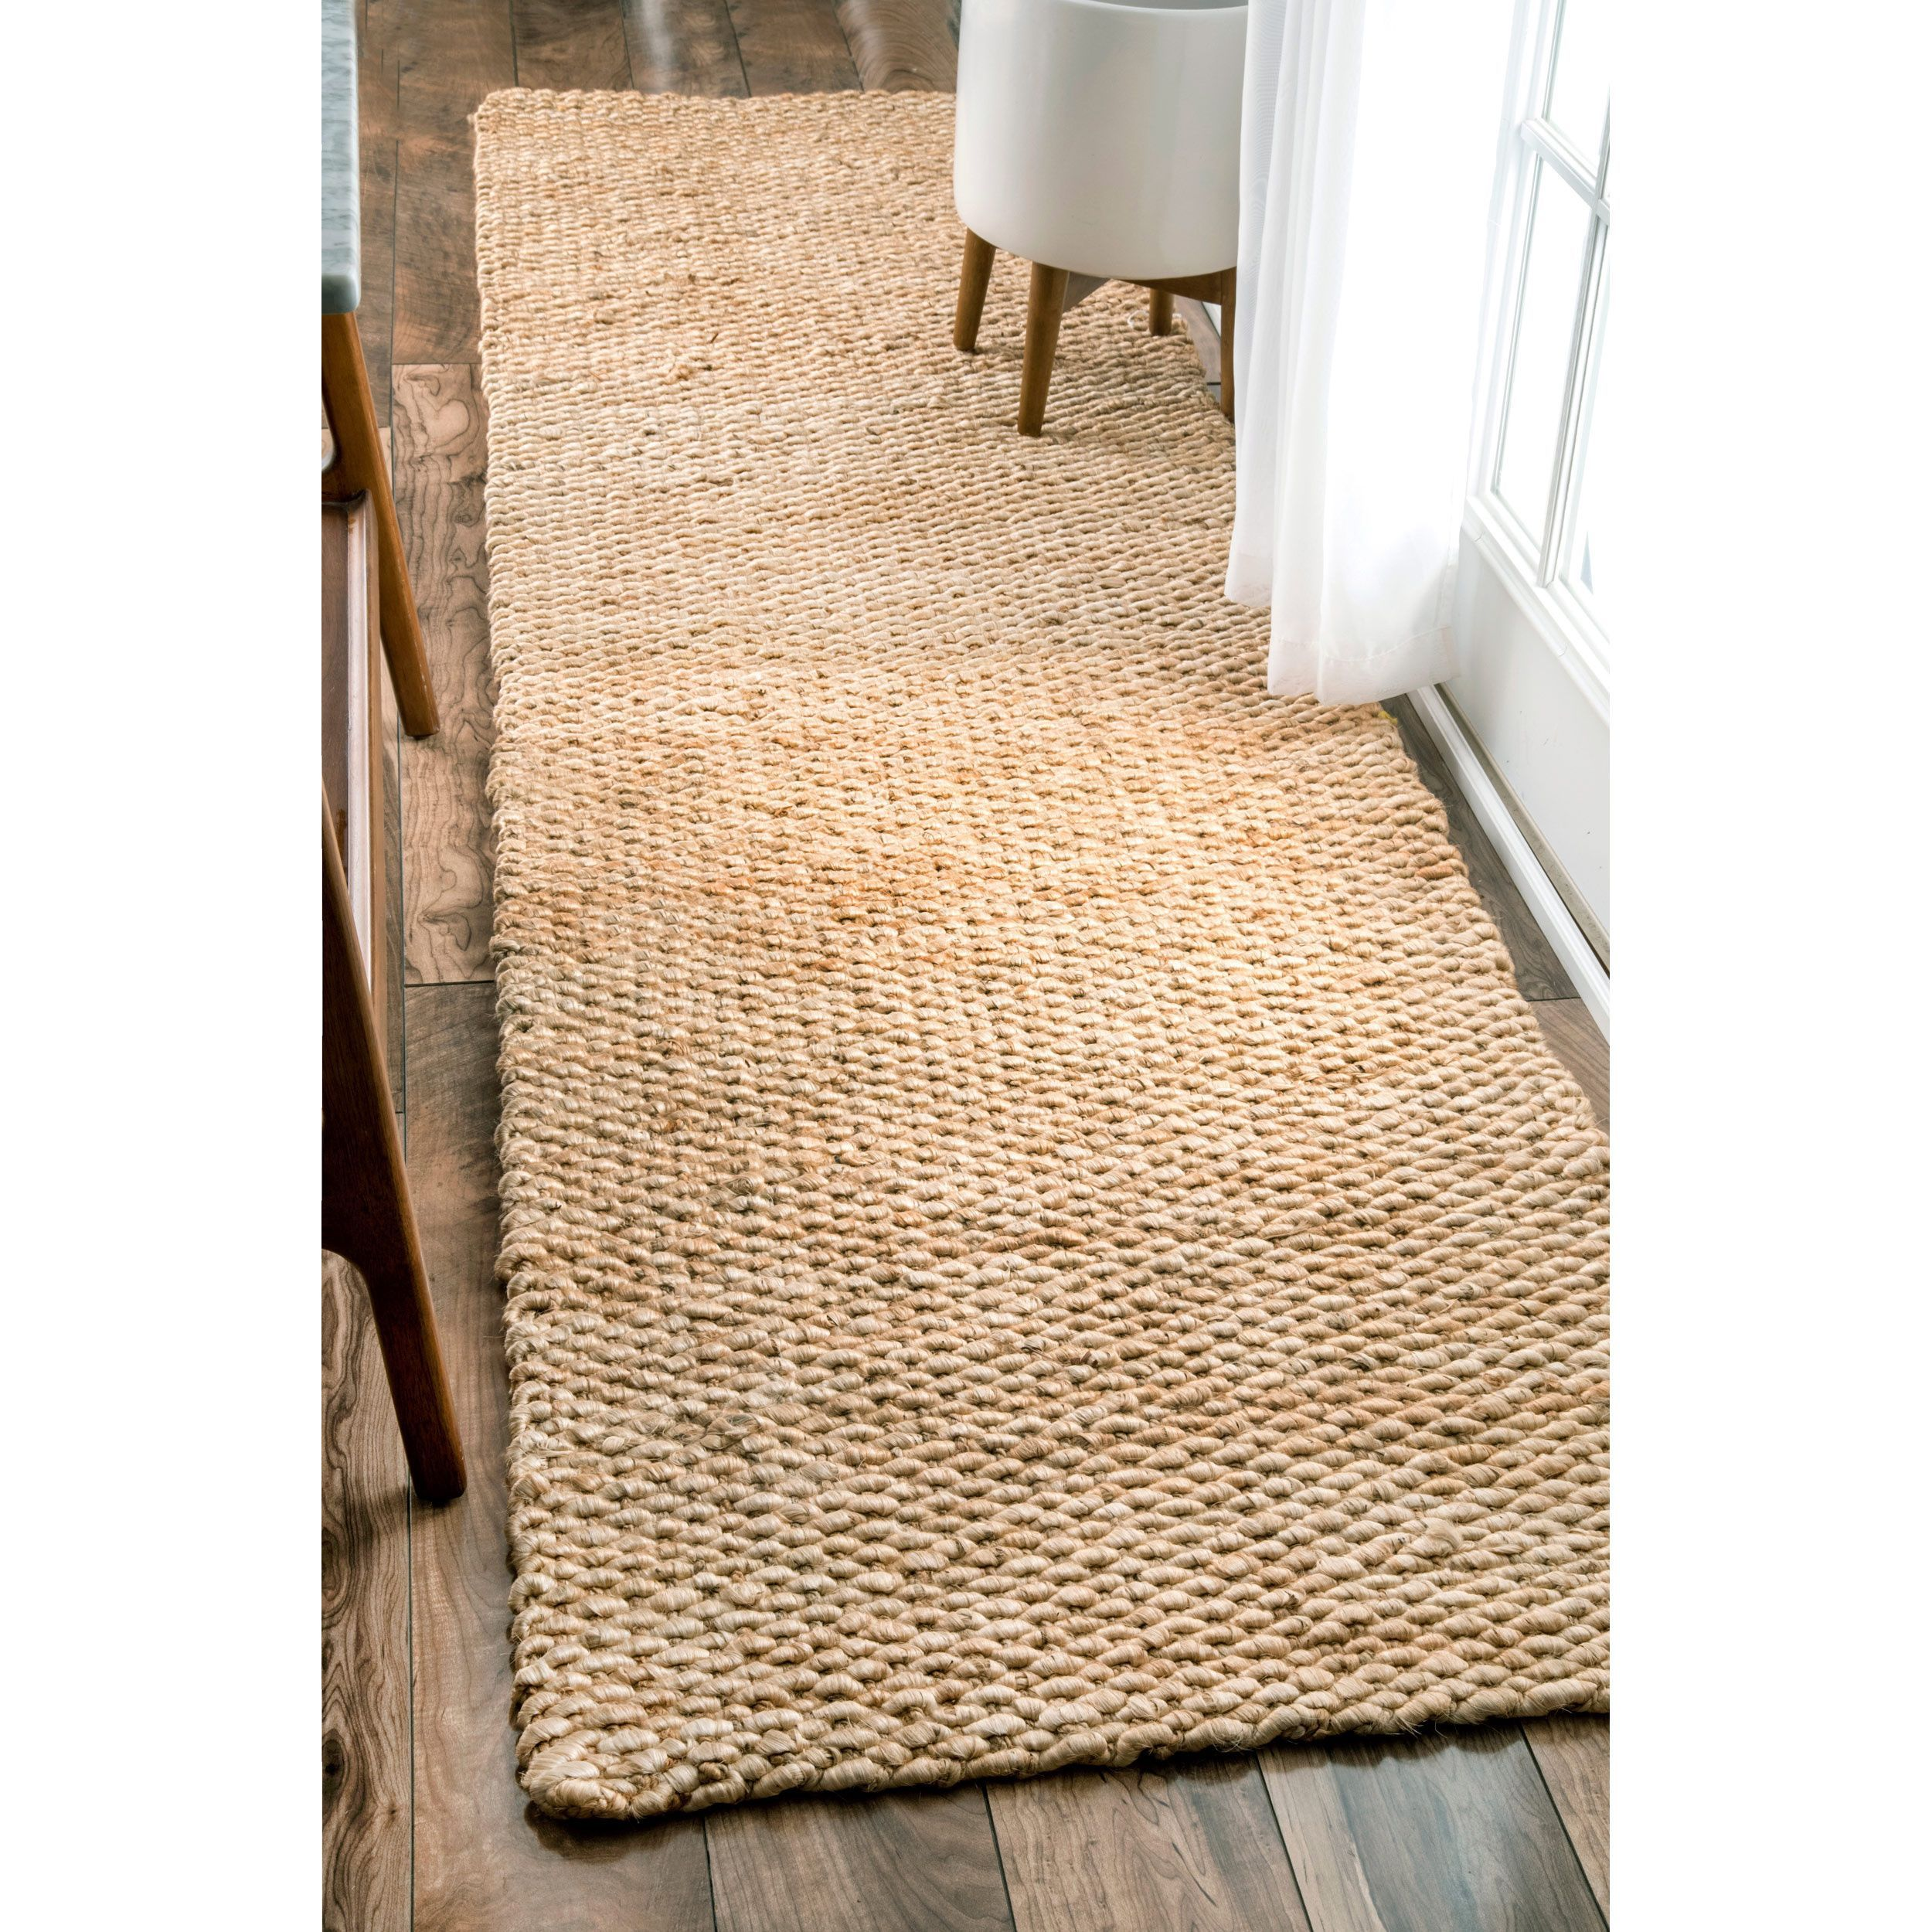 full runner rugs astonishing size malayery astonishingnnerg ft antique greenrunner of kitchen nazmiyal ideas washable image for persian hallways